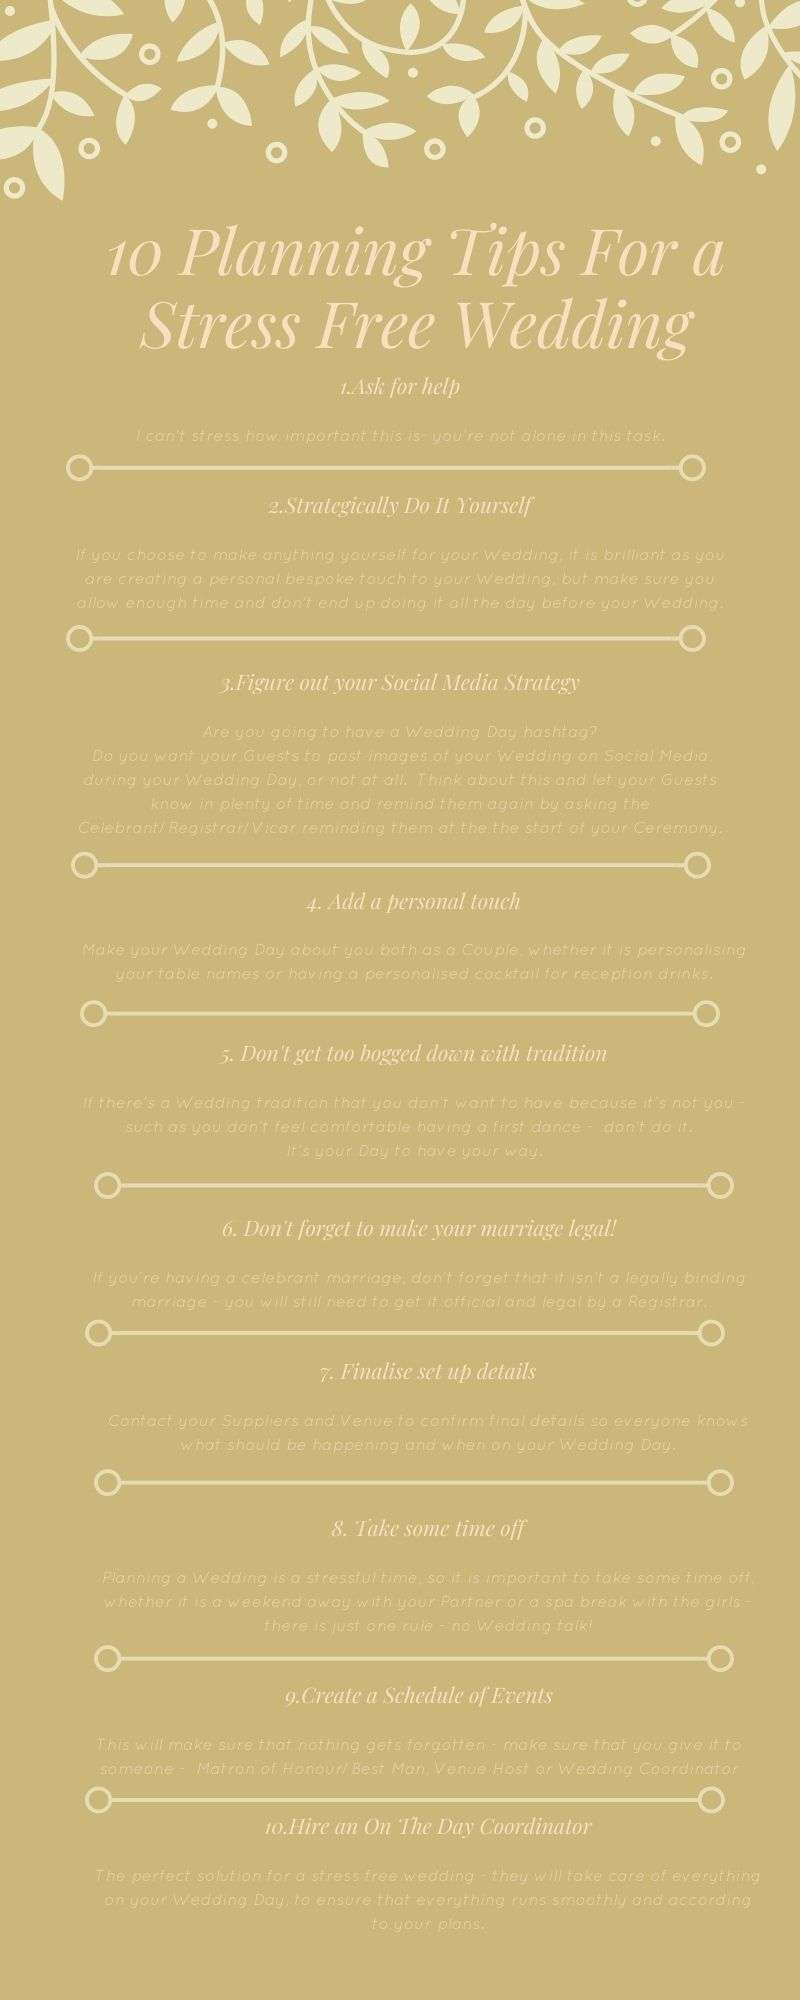 planning tips for a stress free wedding